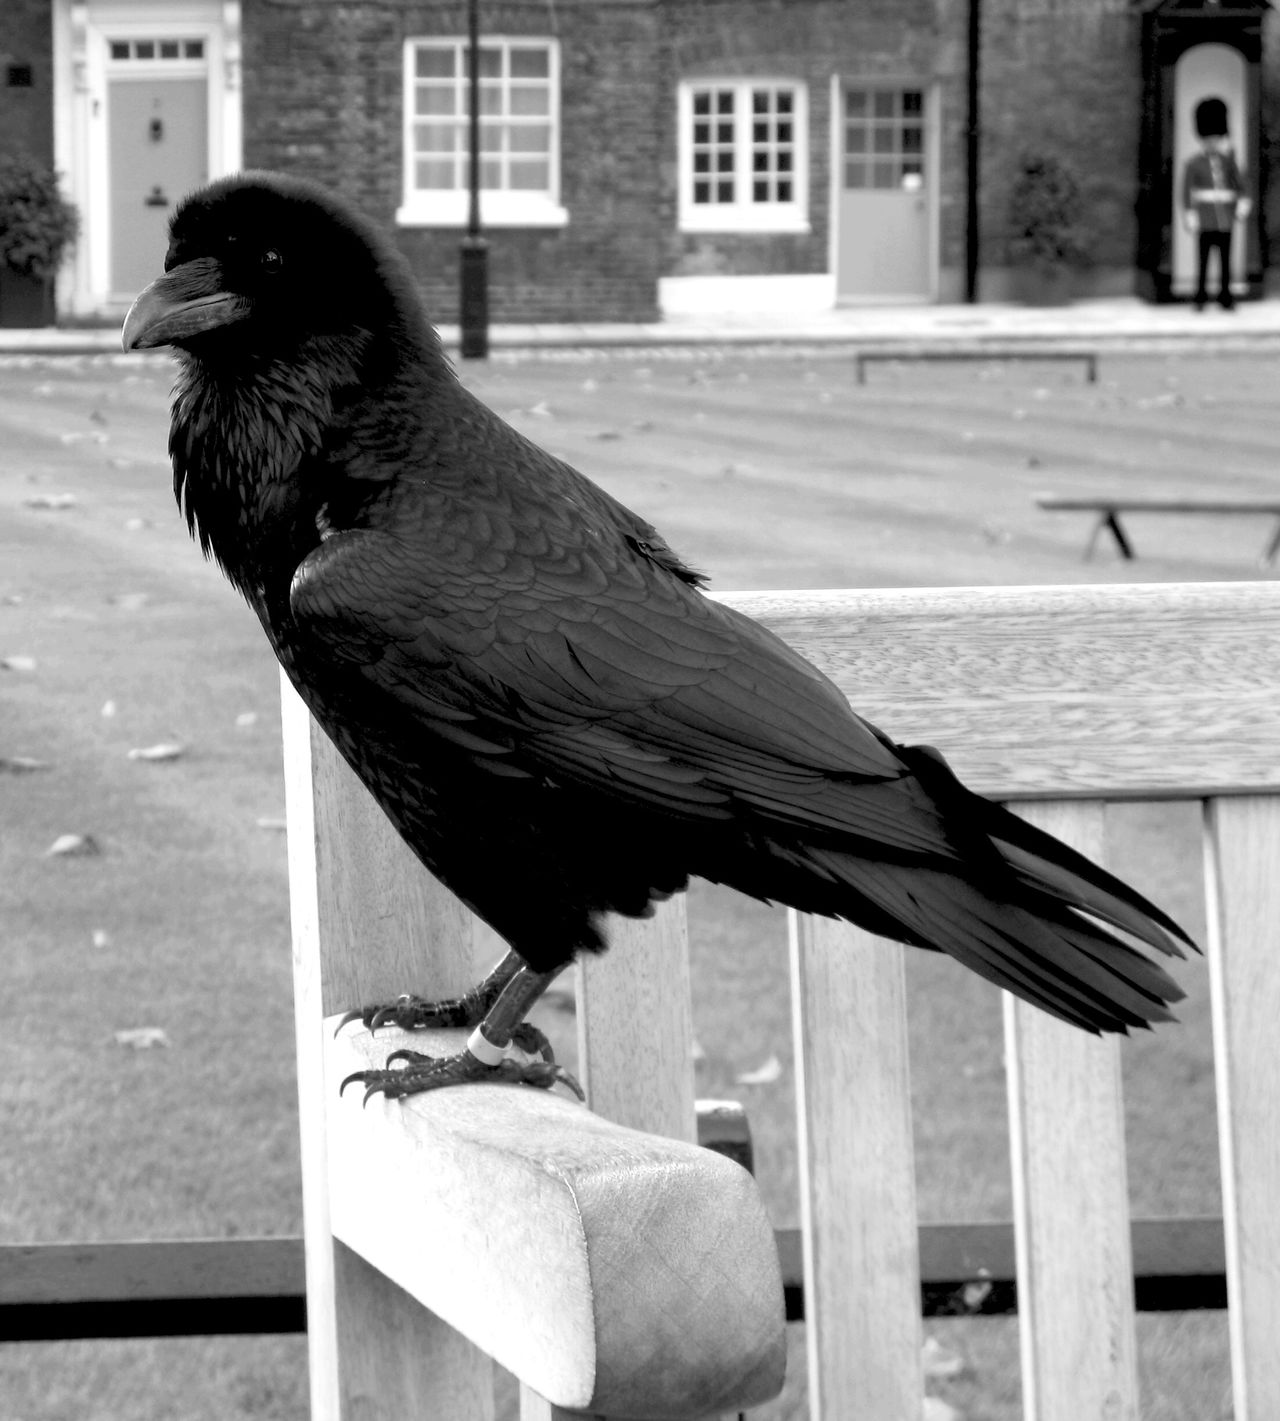 Guard Duty Guard Duty Tower Of London Raven London Bird Black